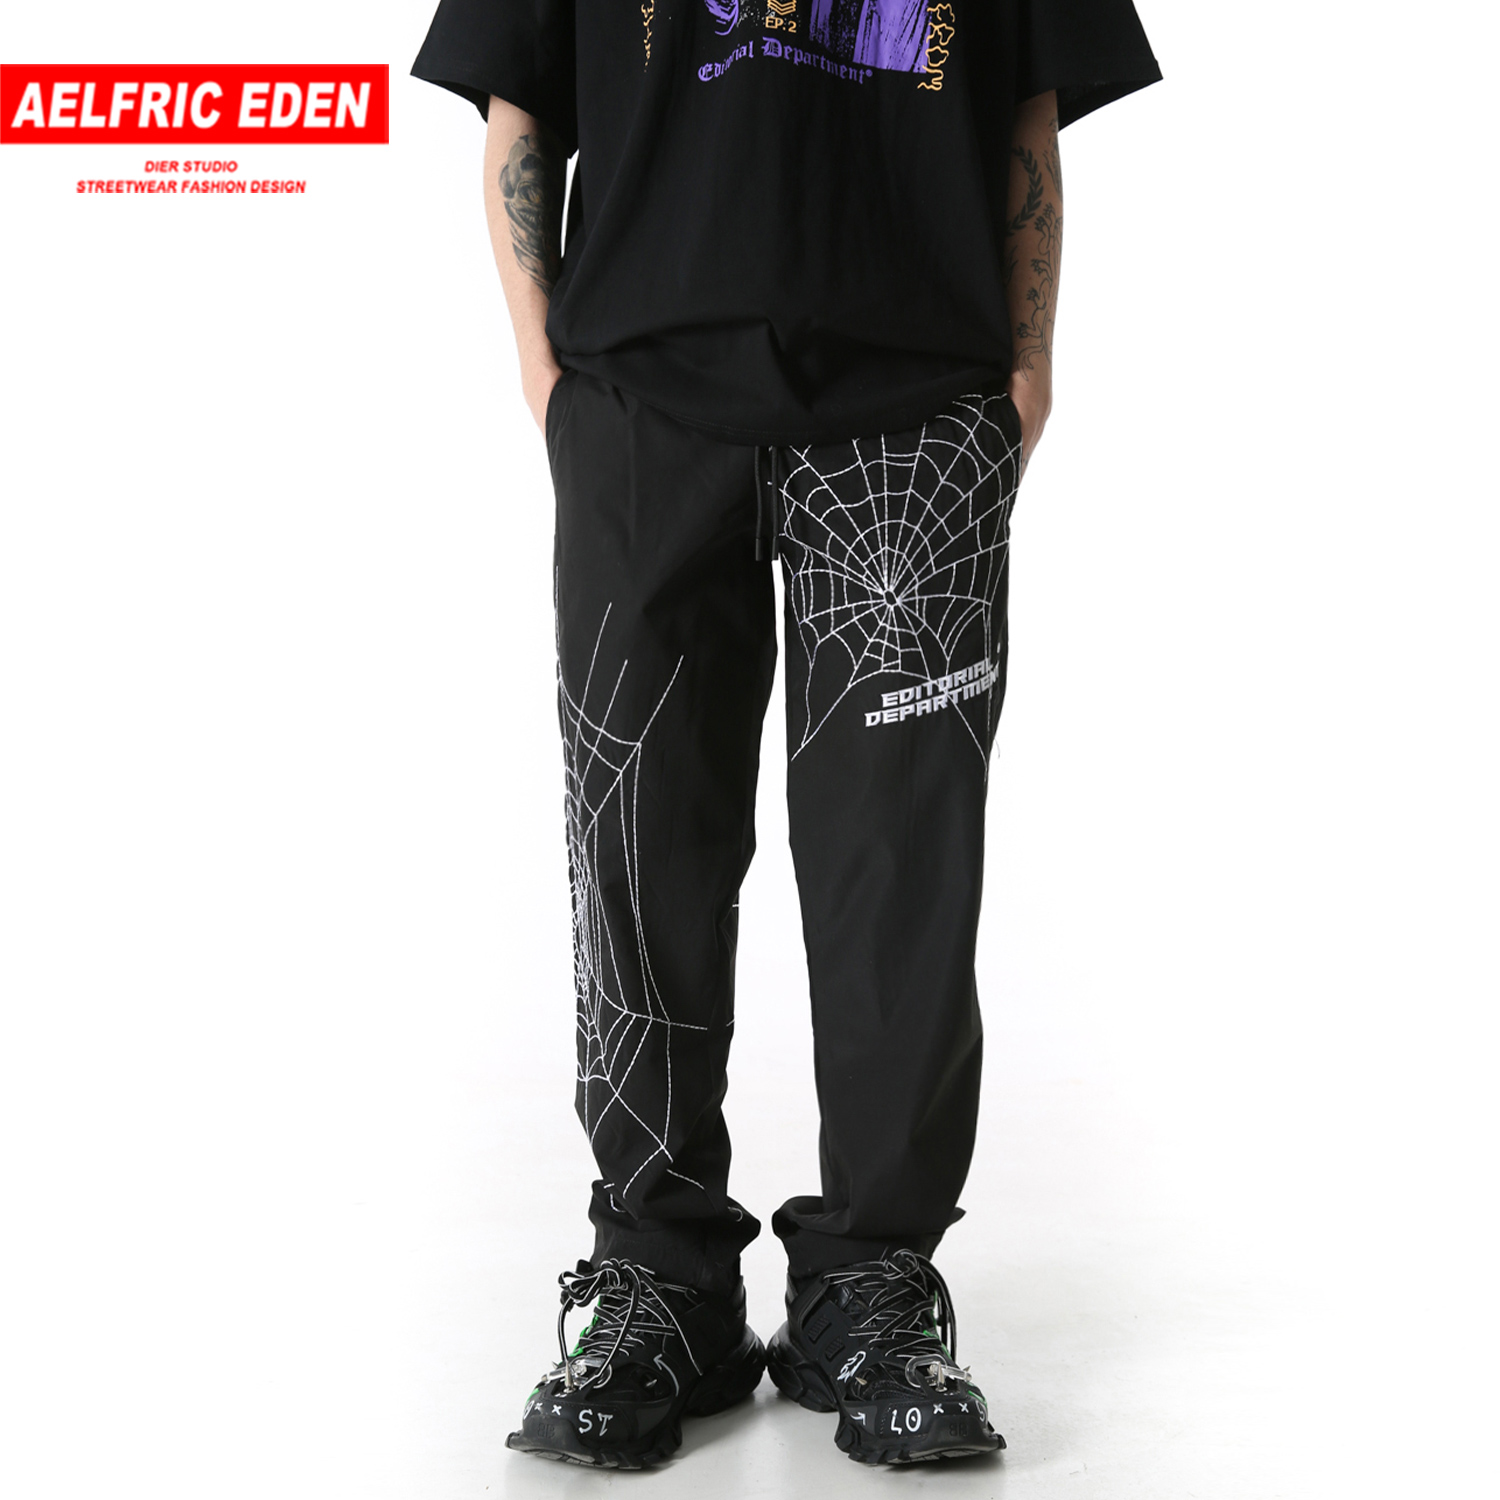 Aelfric Eden Spider Web Printing  Trousers Men 2020 Fashion Harajuku Casual Hip Hop Jogging Harlan Trousers Street Clothing